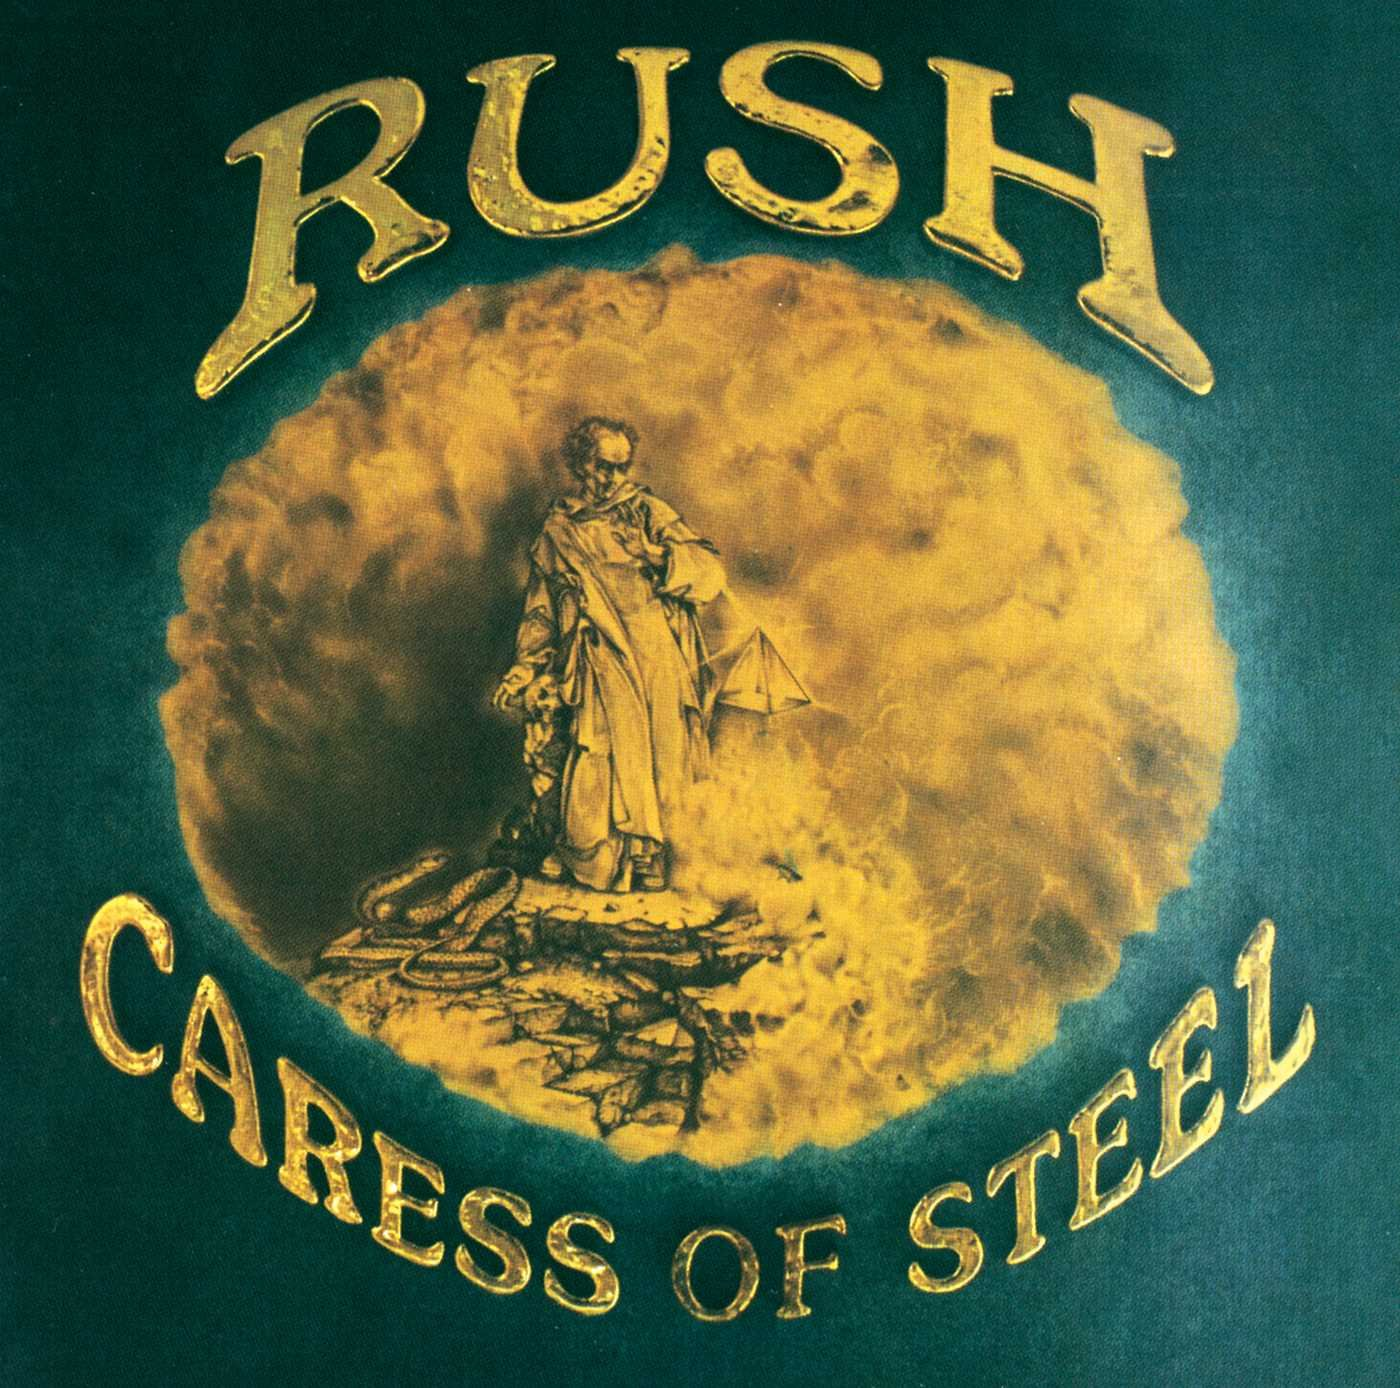 Rush: Caress of Steel cover art, 1975